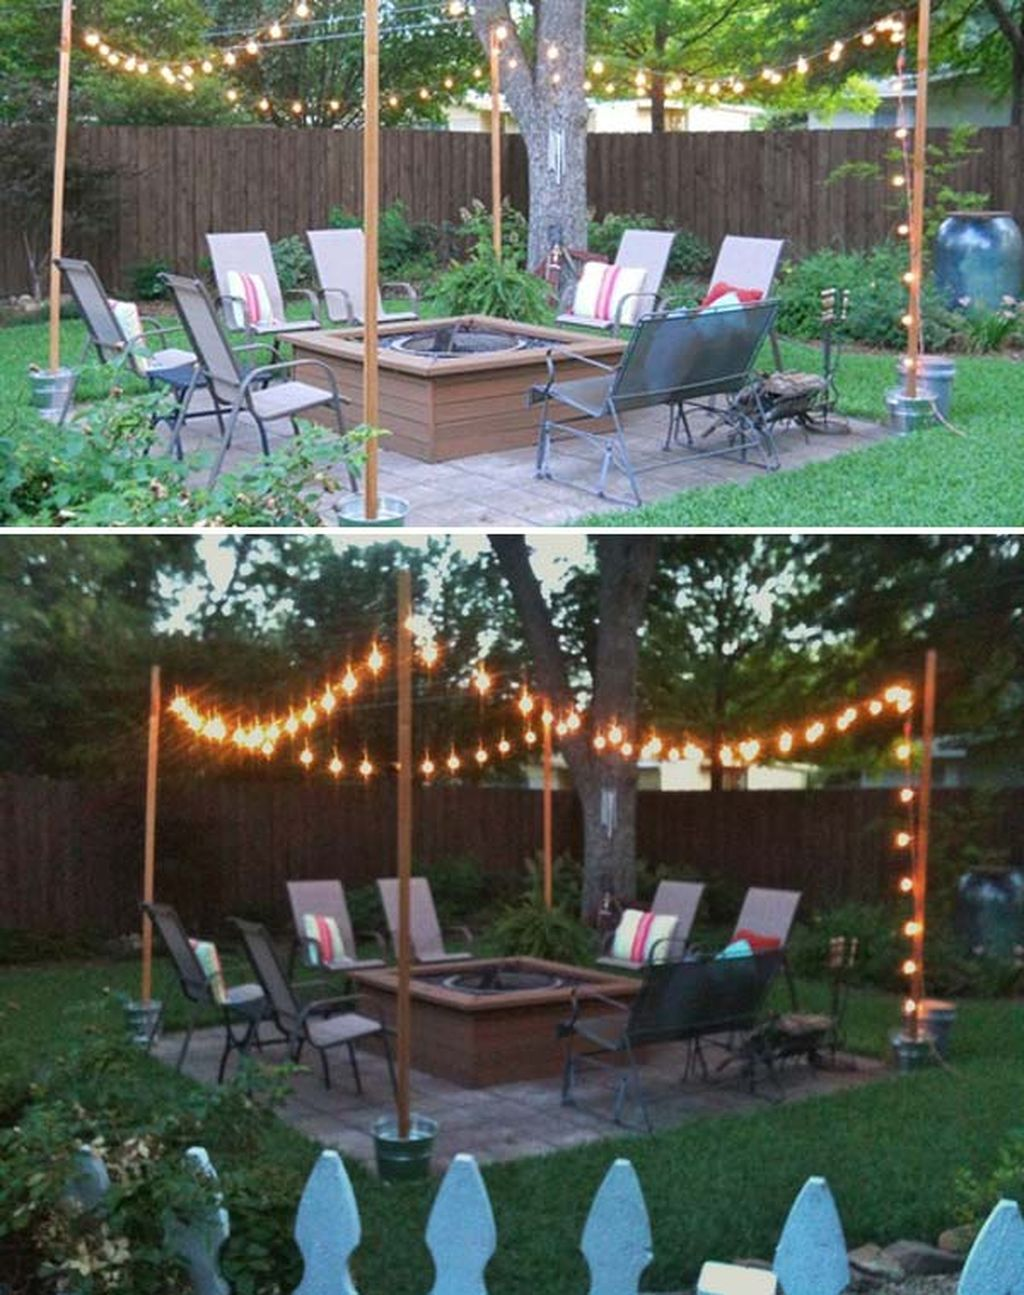 63 Simple Diy Fire Pit Ideas For Backyard Landscaping Backyard